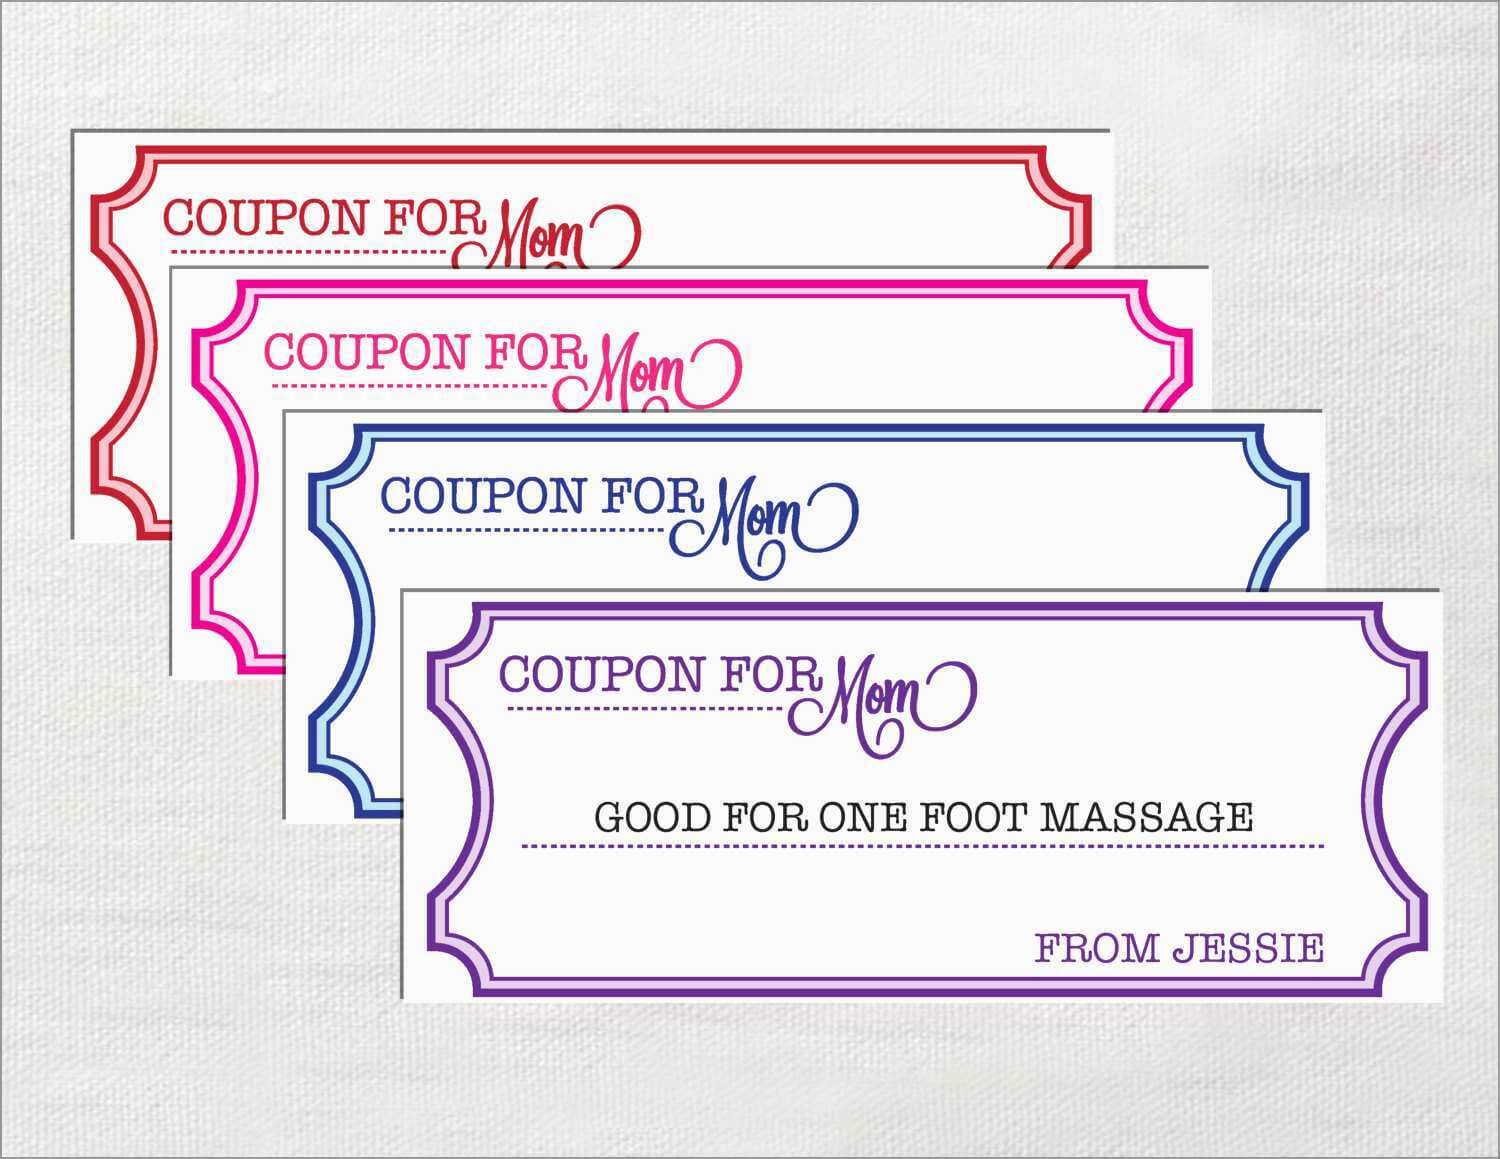 020 Free Coupon Template Word Ideas Exceptional Blank For Blank Coupon Template Printable